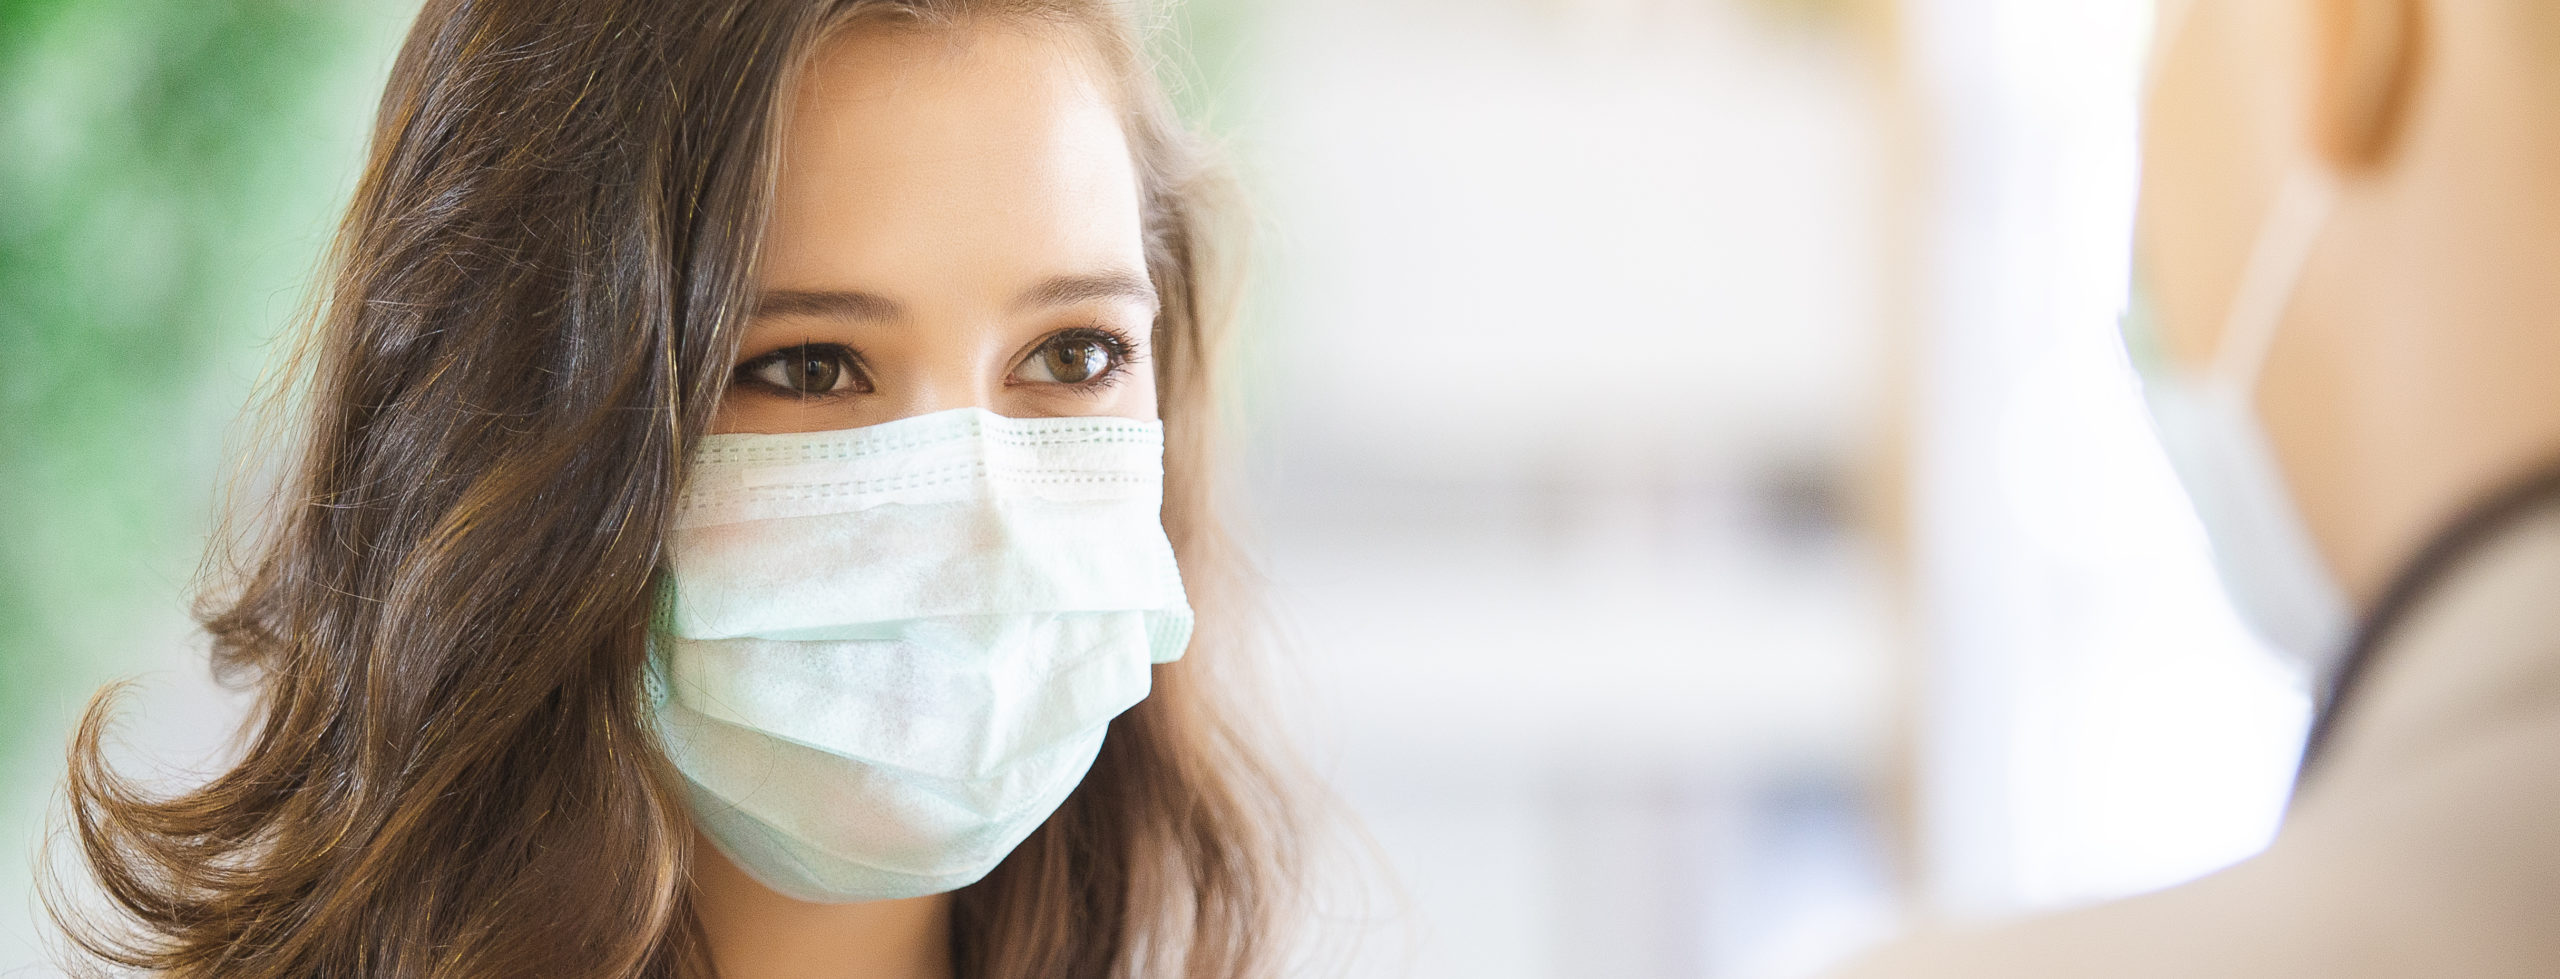 close up face woman wearing medical mask for prevent dust and infection virus.